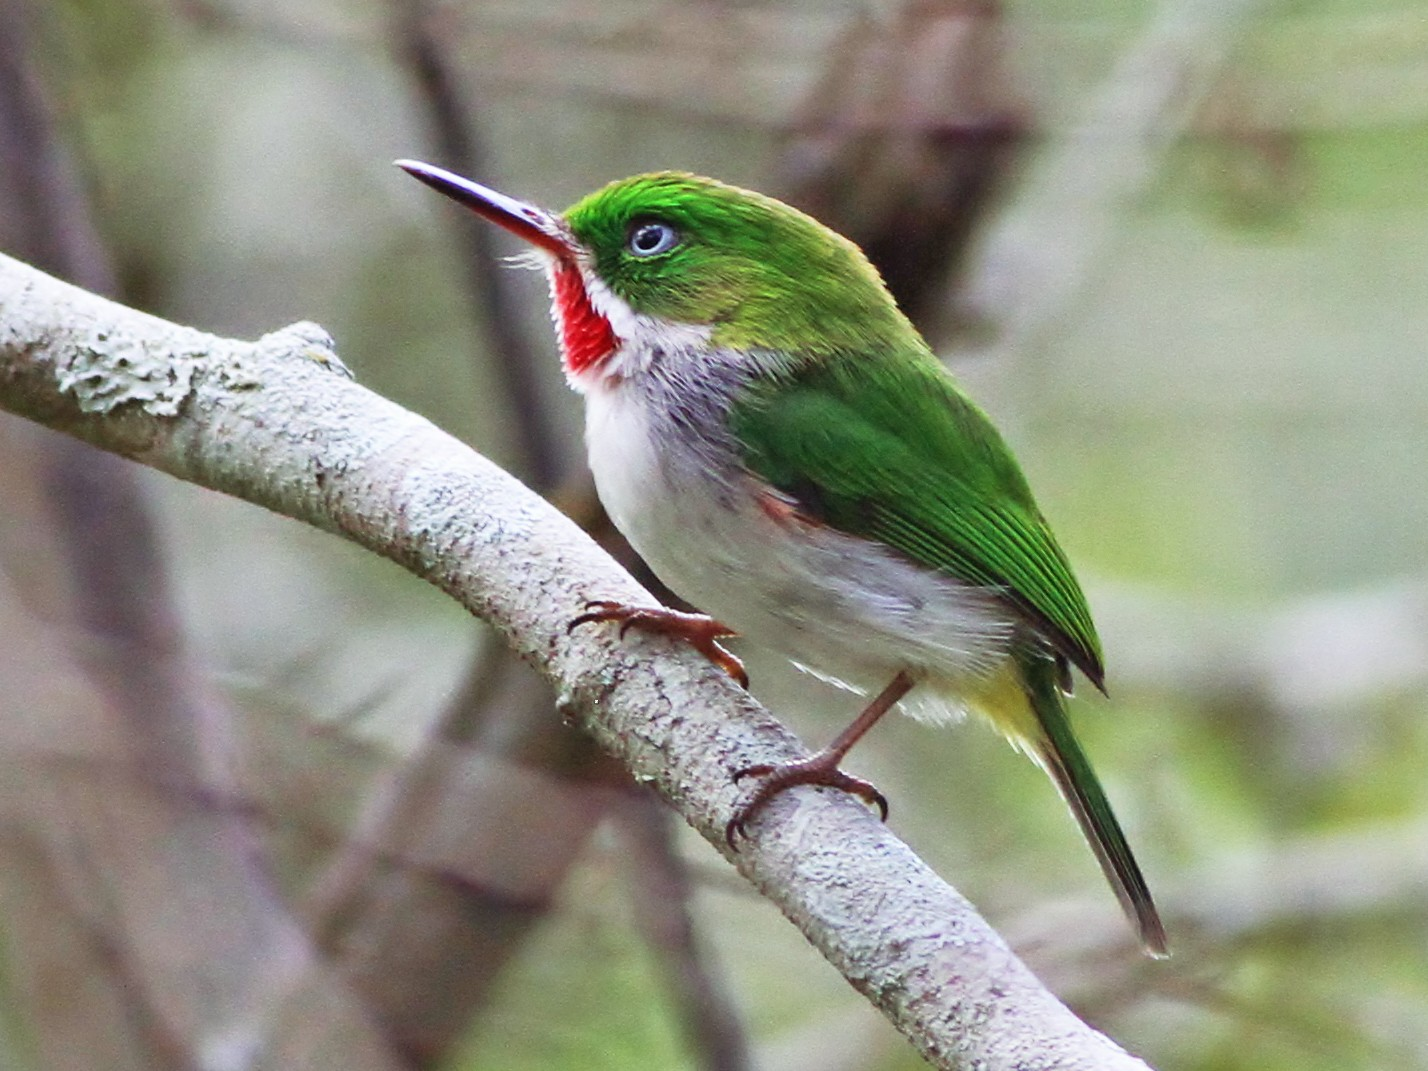 Narrow-billed Tody - Alex Lamoreaux